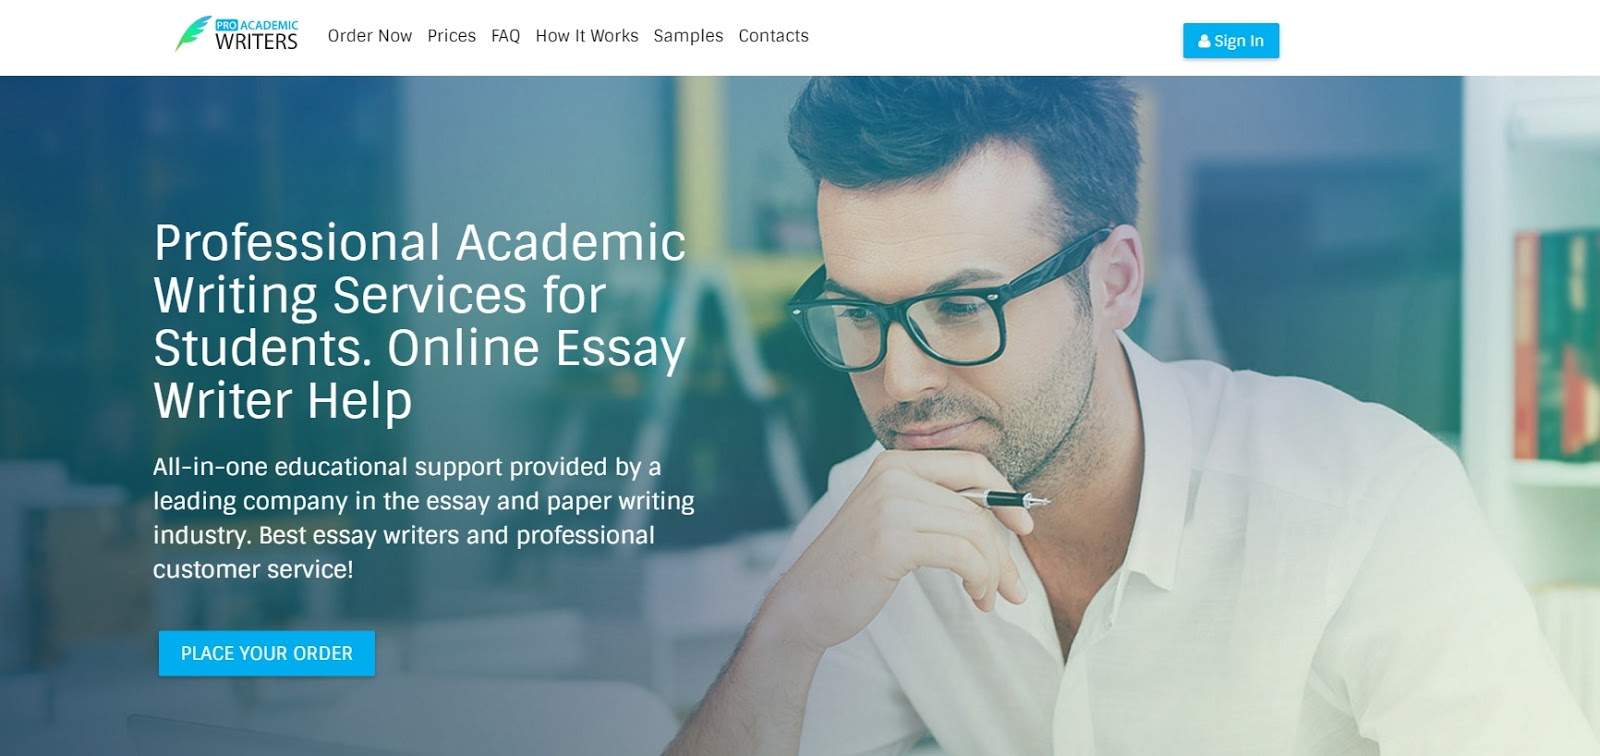 005 Pro Academic Writers Essay Writing Service Wondrous Free Uk Reviews Forum Best Full